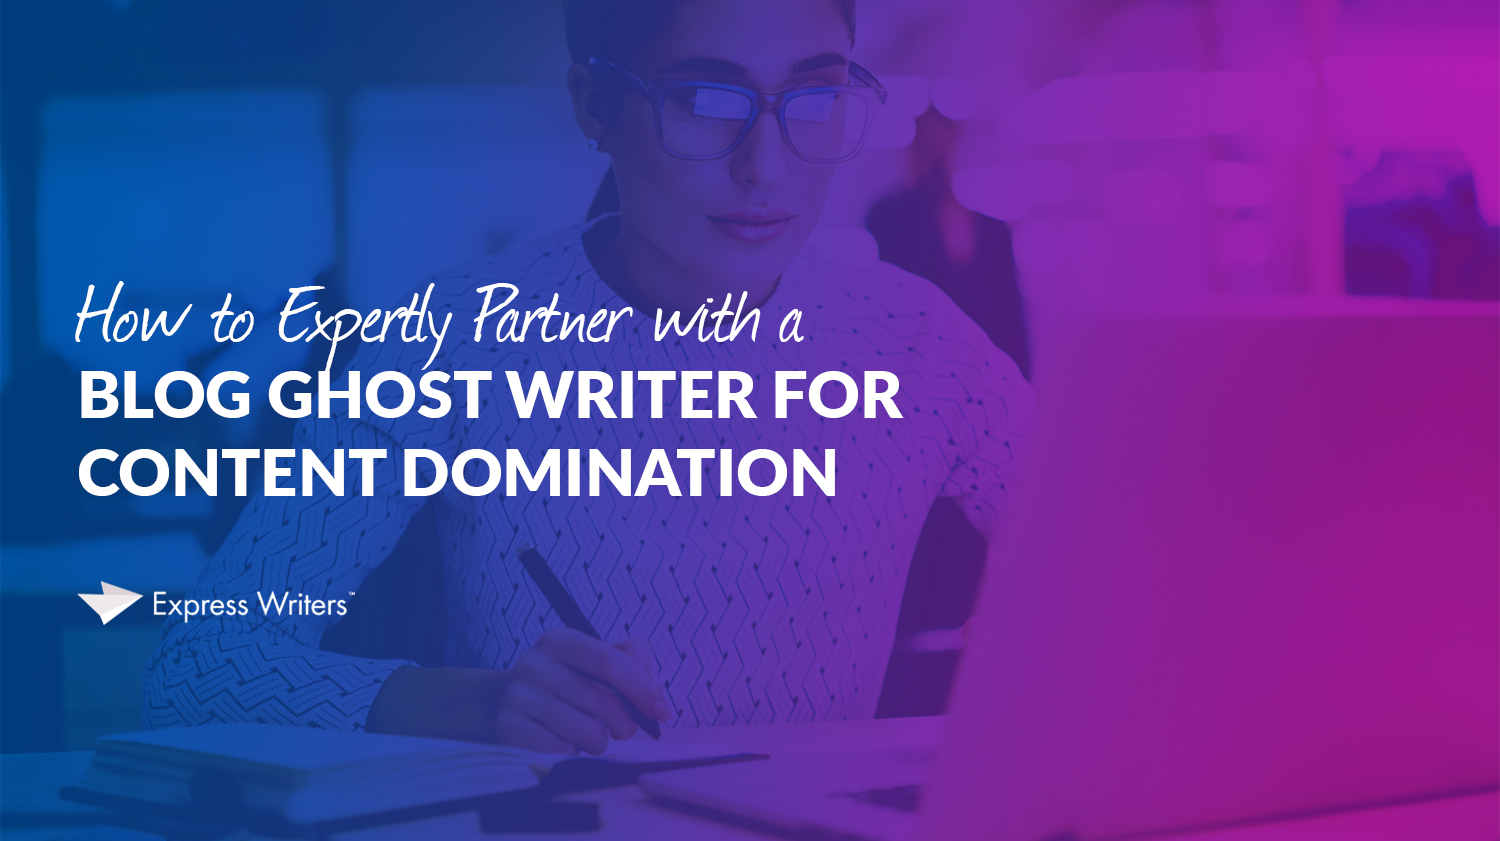 blog ghost writer guide